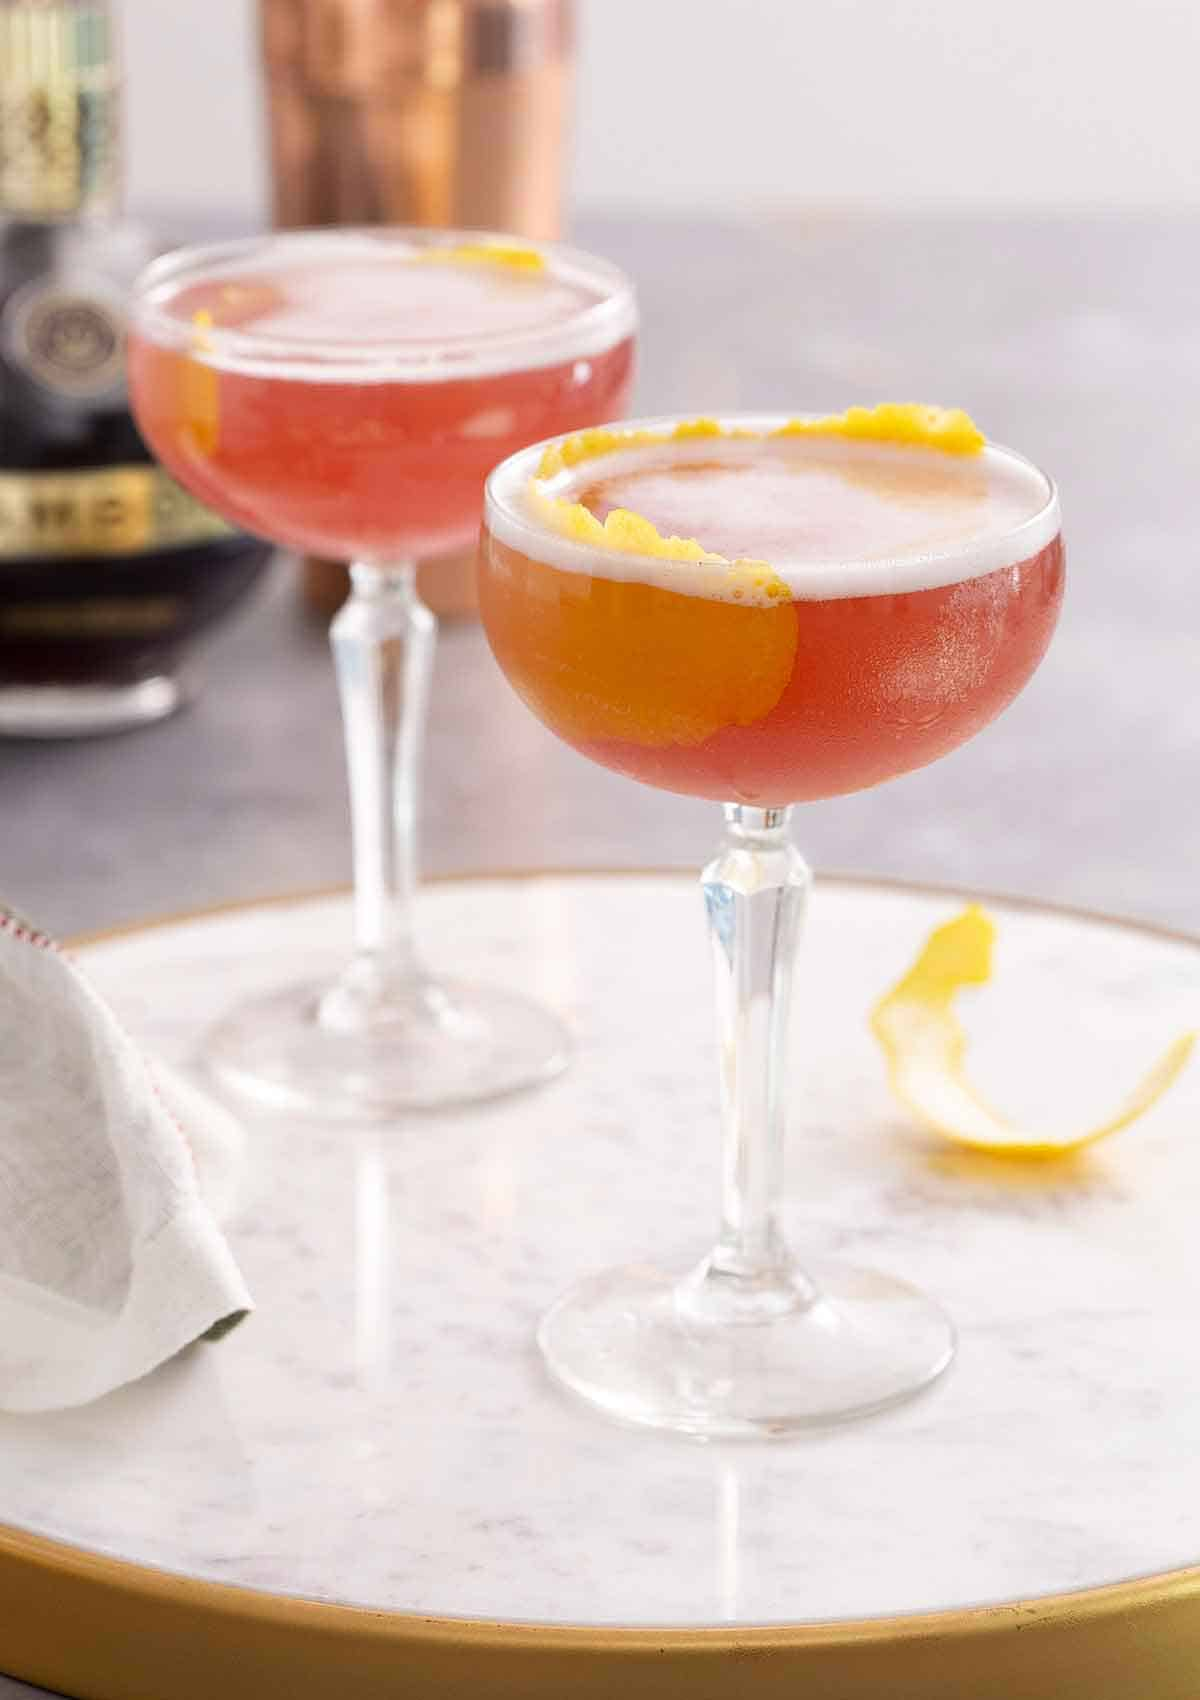 Two glasses of French martini with lemon garnish on a marble surface.